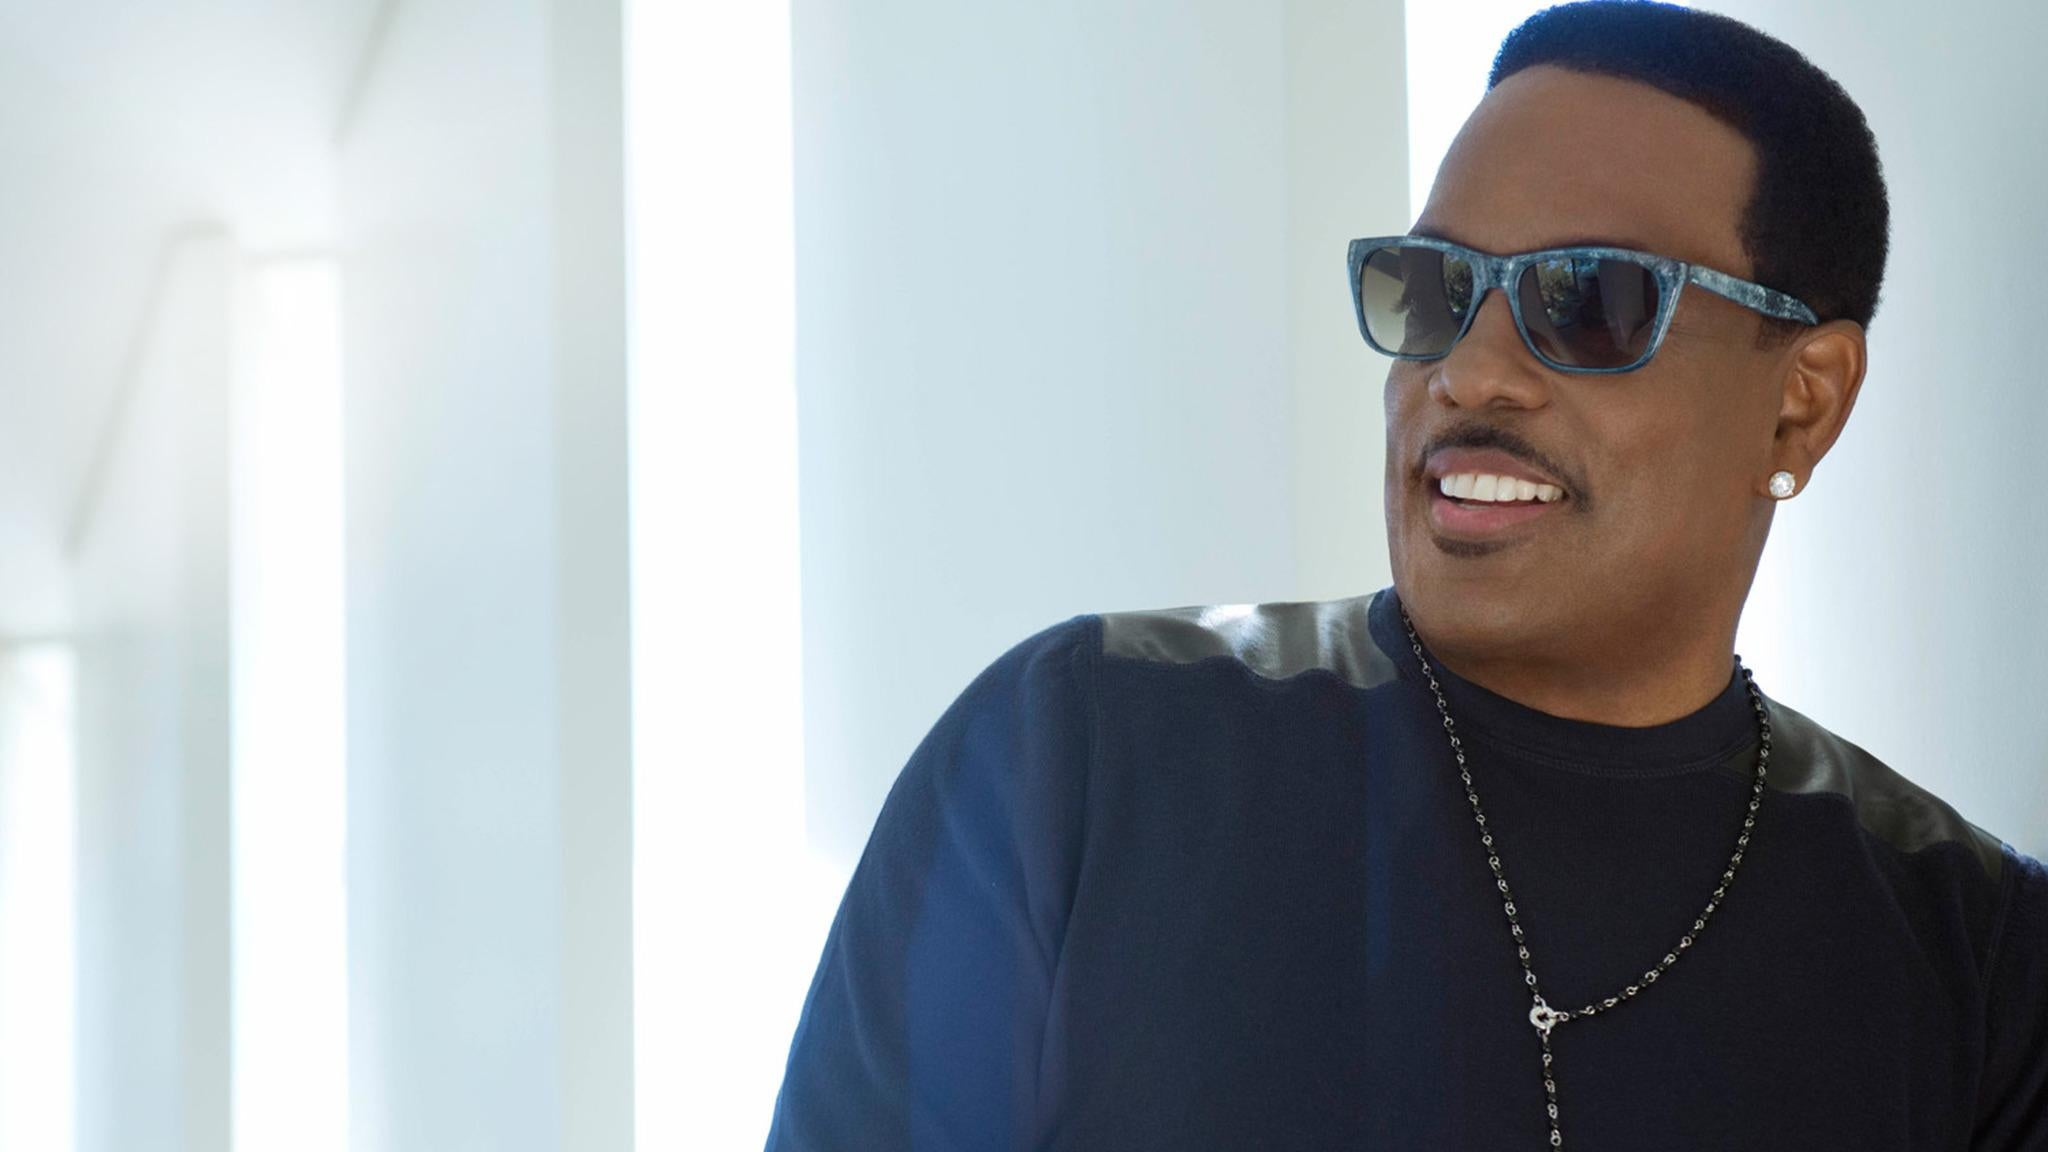 Charlie Wilson at Florence Civic Center